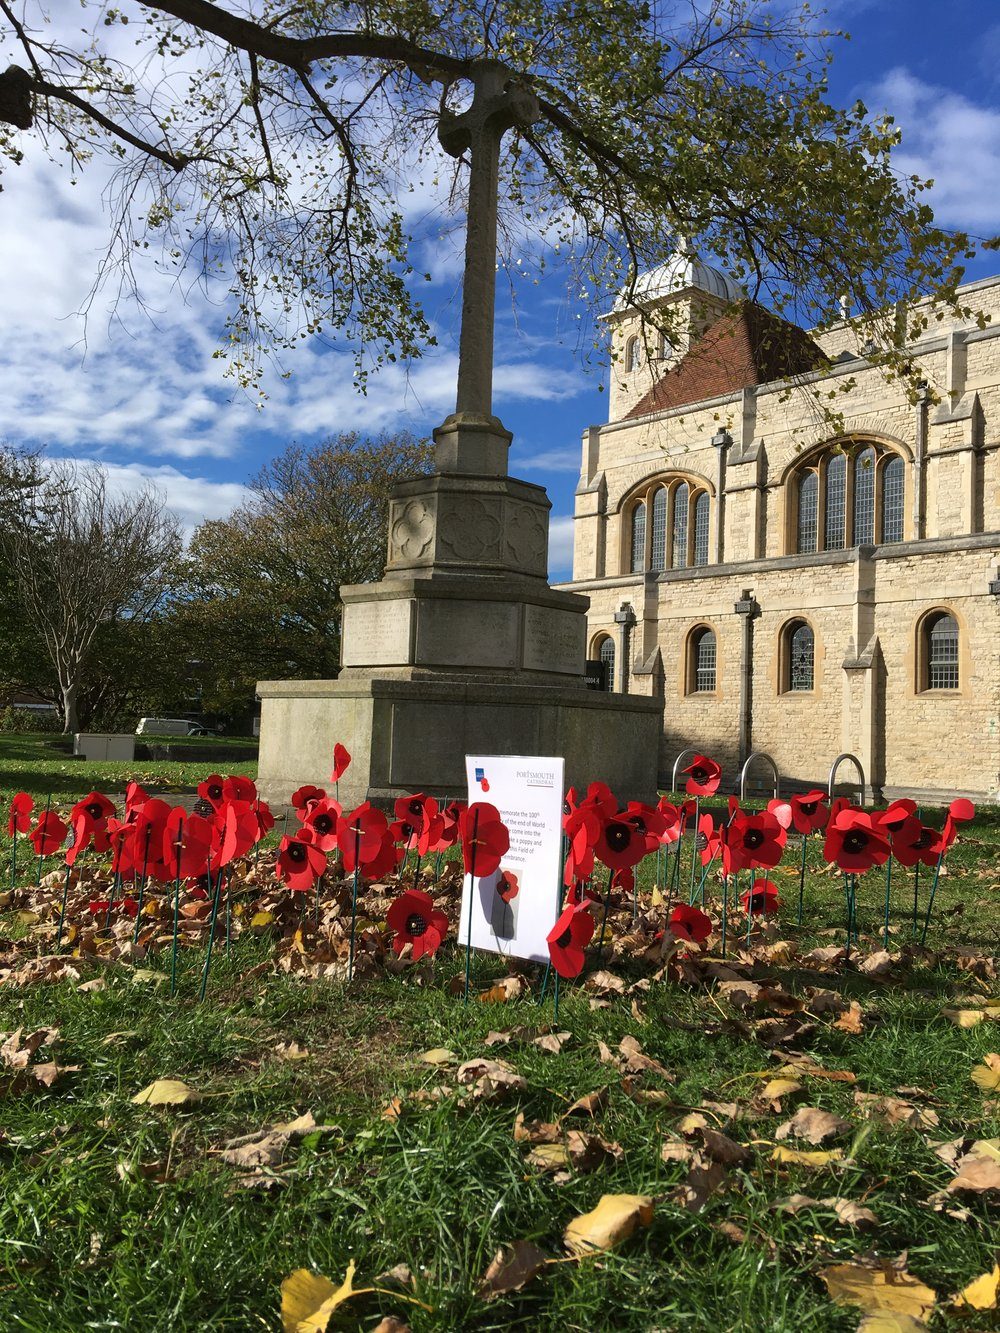 Poppies made at the Cathedral are being placed at the foot of the War Memorial in Old Portsmouth.